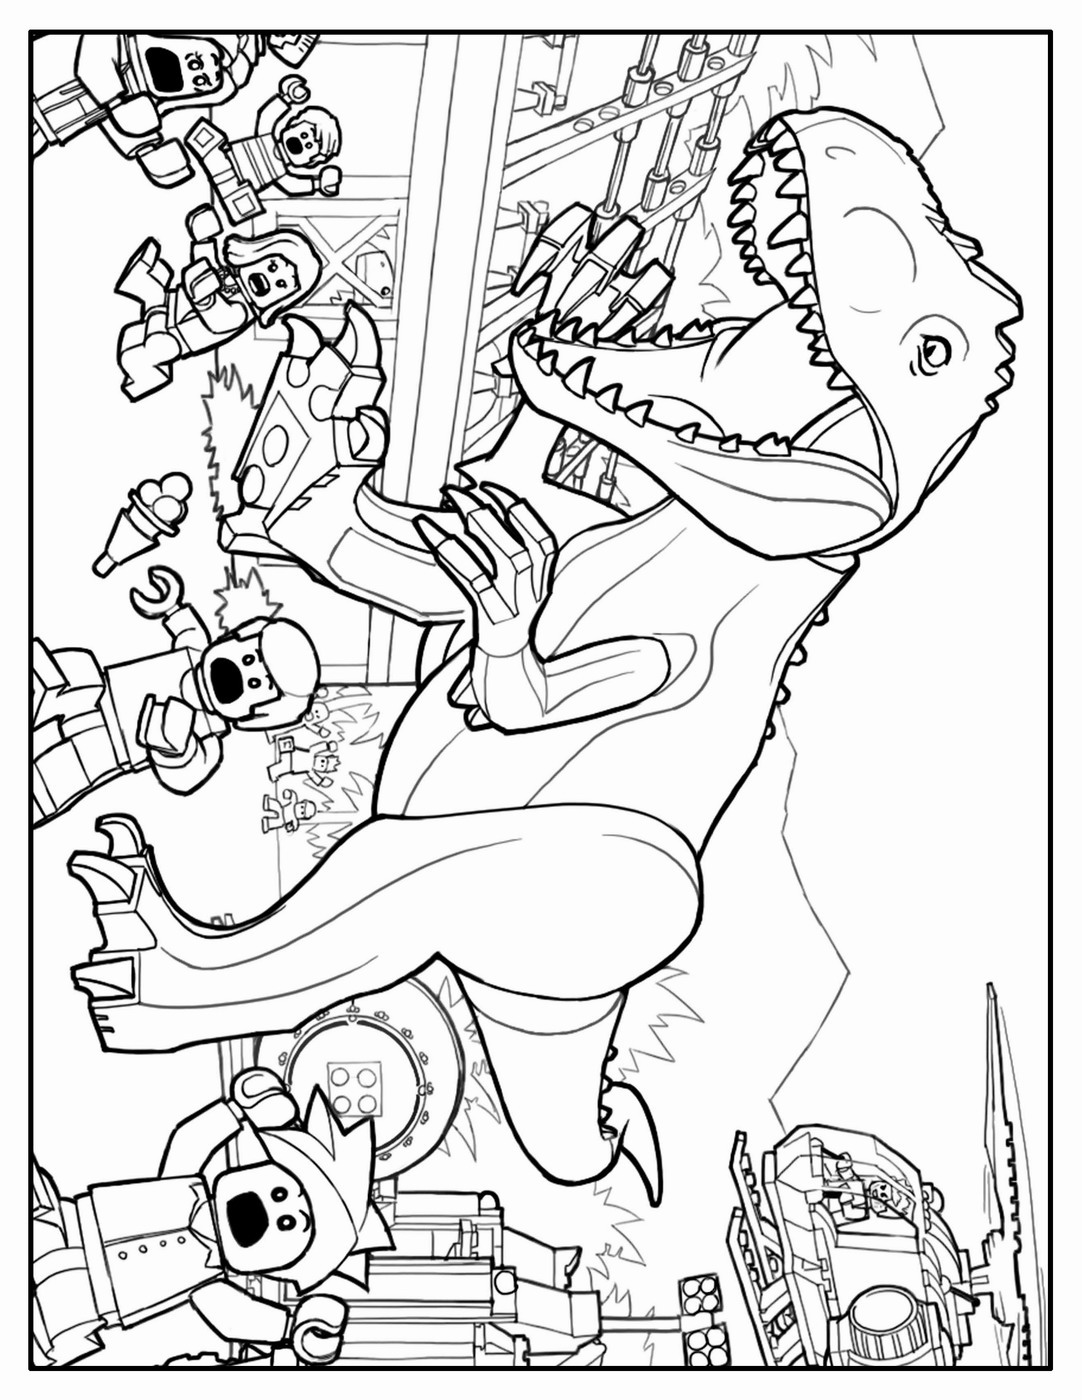 lego jurassic park coloring pages lego jurassic world coloring pages at getcoloringscom jurassic pages park coloring lego